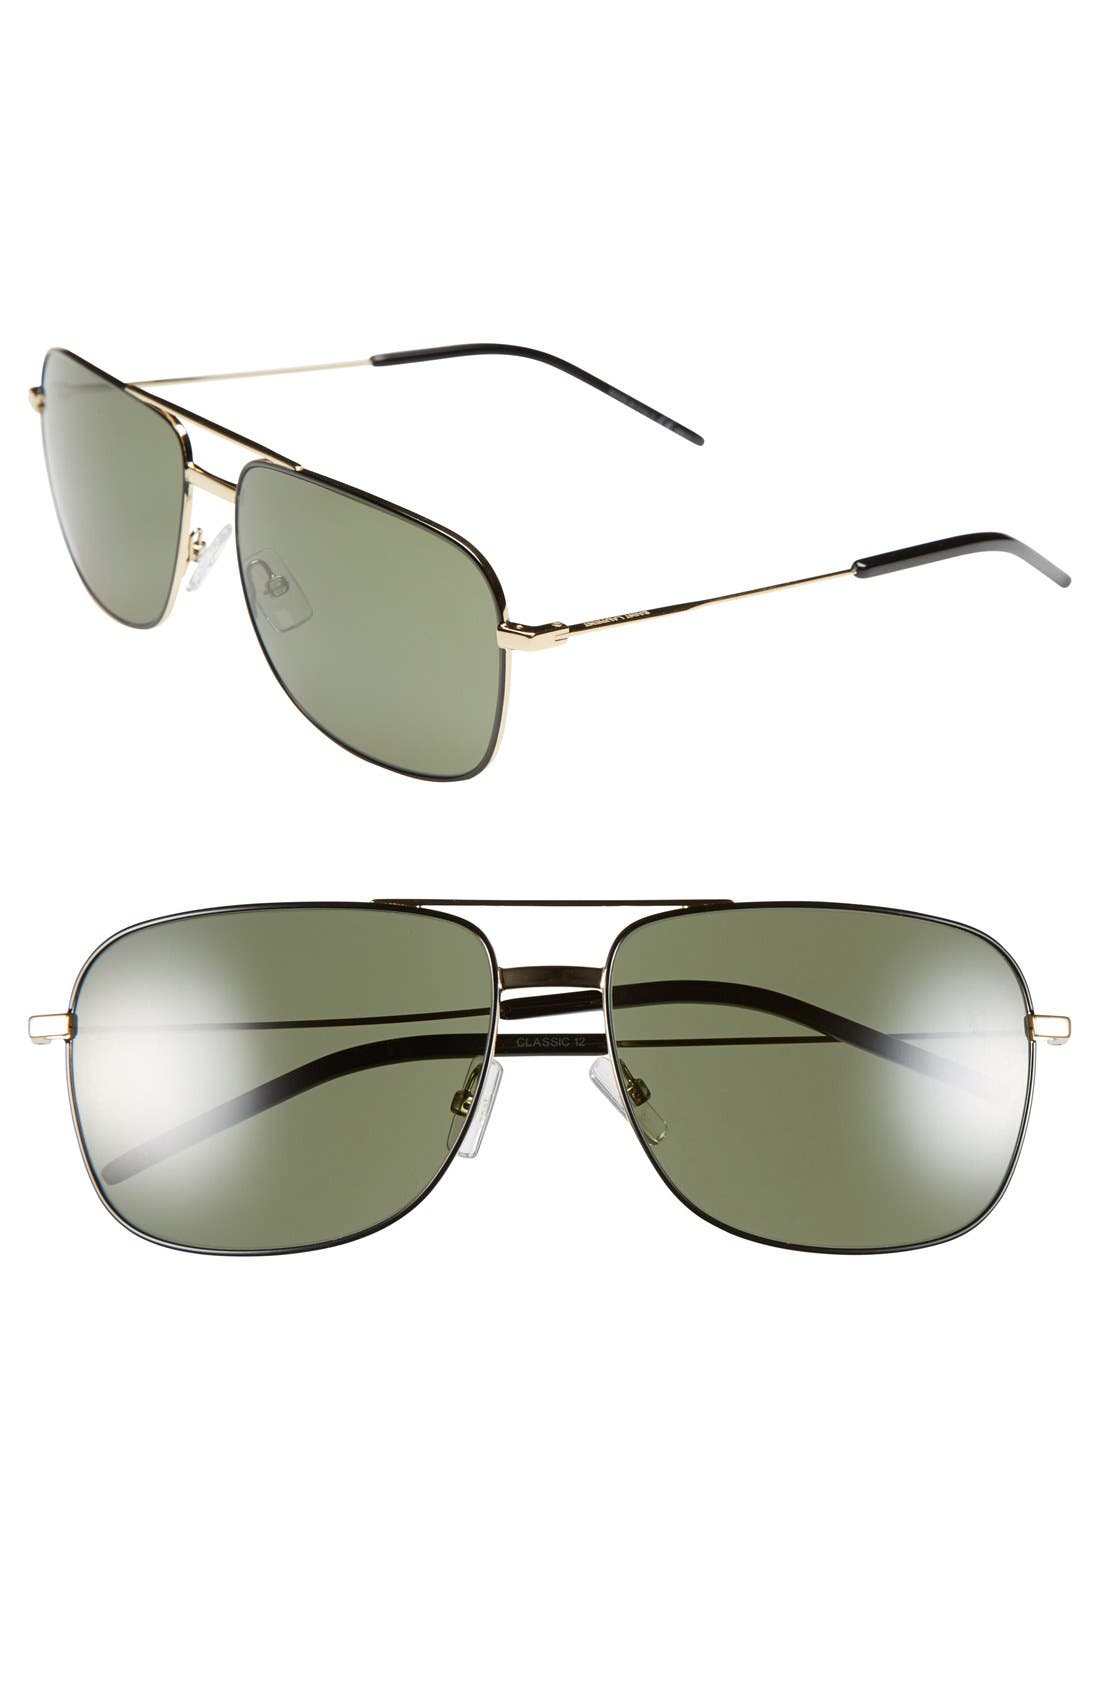 Alternate Image 1 Selected - Saint Laurent 59mm Navigator Sunglasses